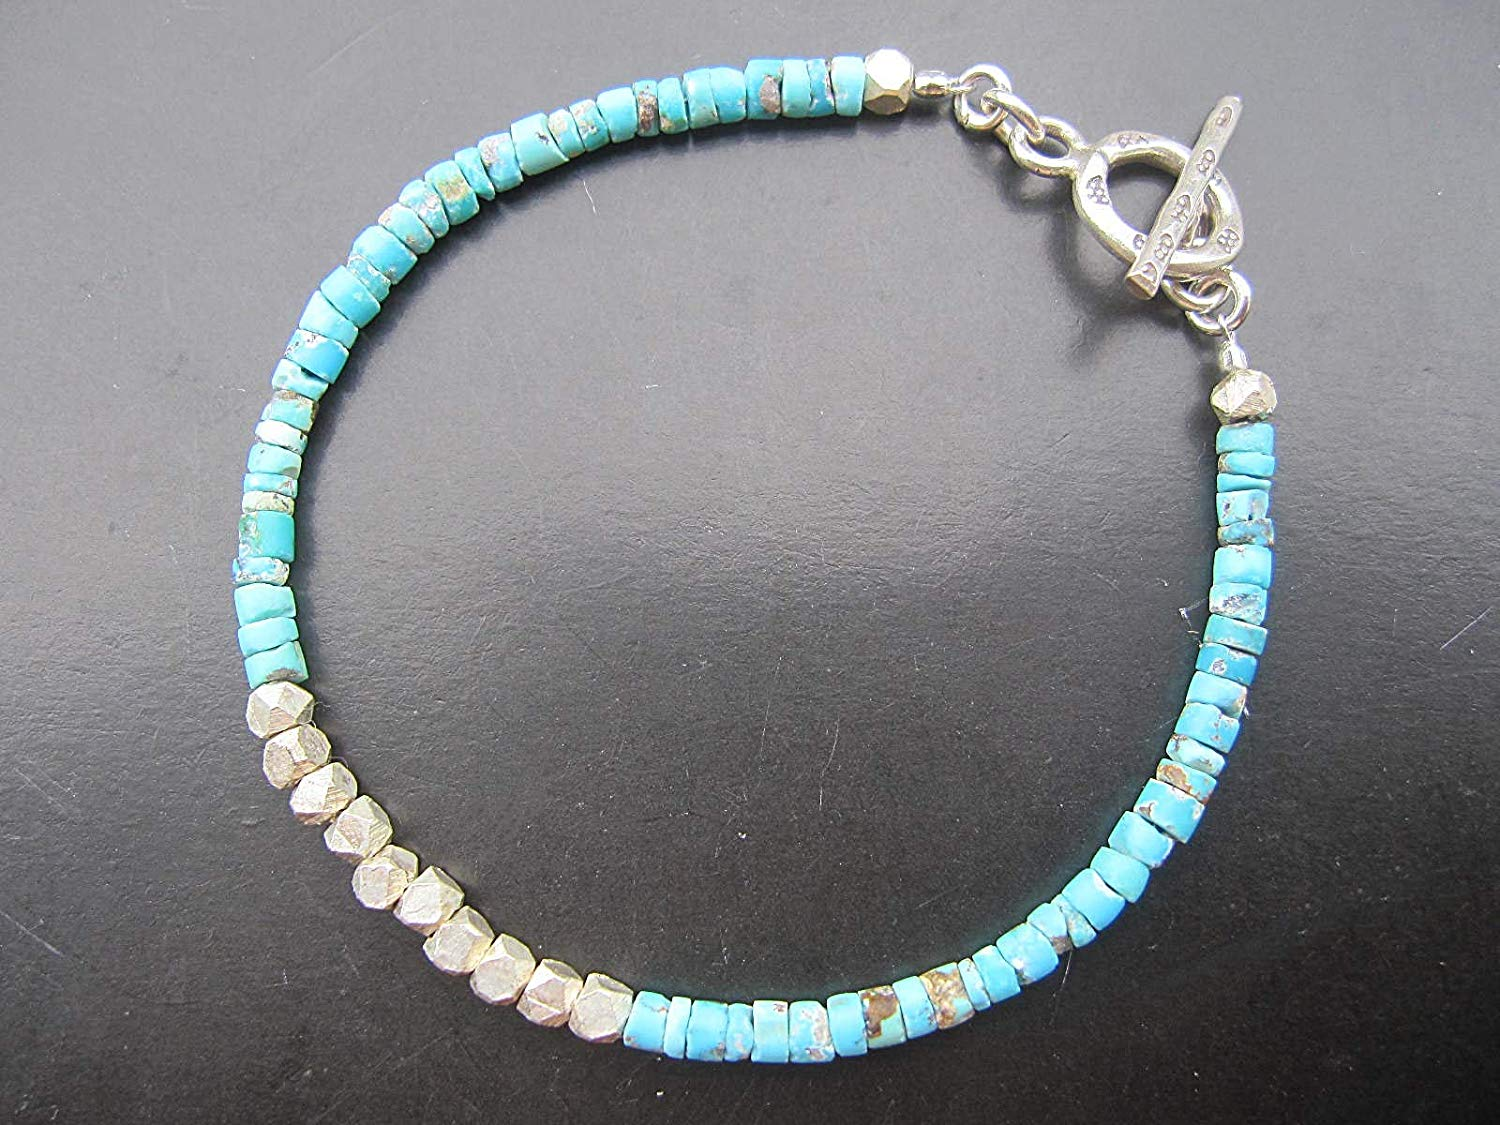 Afghan Turquoise seed beads Bracelet,Size 3 mm, Karen Hill Tribe Silver Clasp,Custom size 6.5,7,7.5,8,8.5 inches